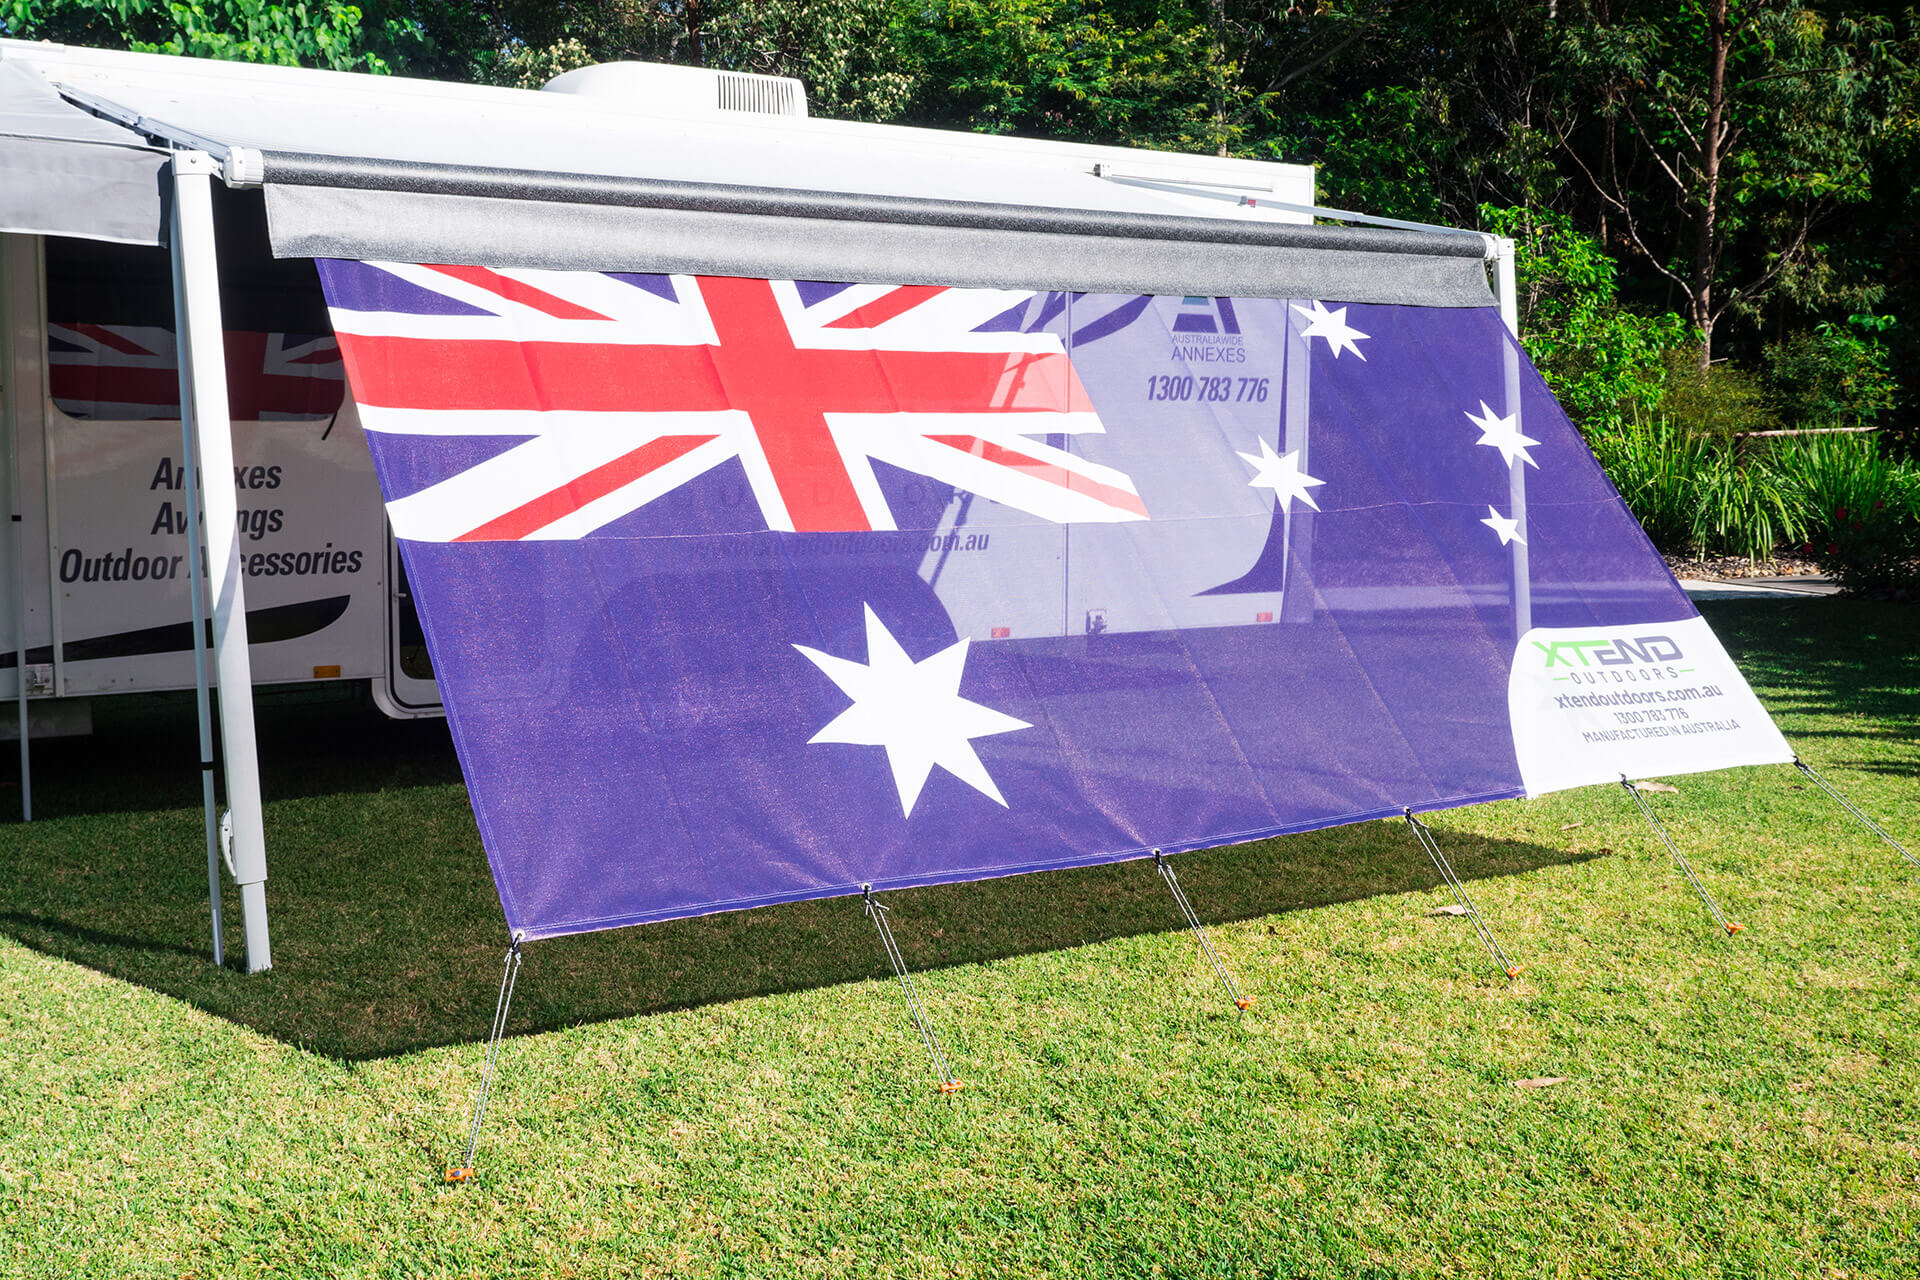 awning zipblocker shades side shade panels ez images end rv screens drop exceptional screen